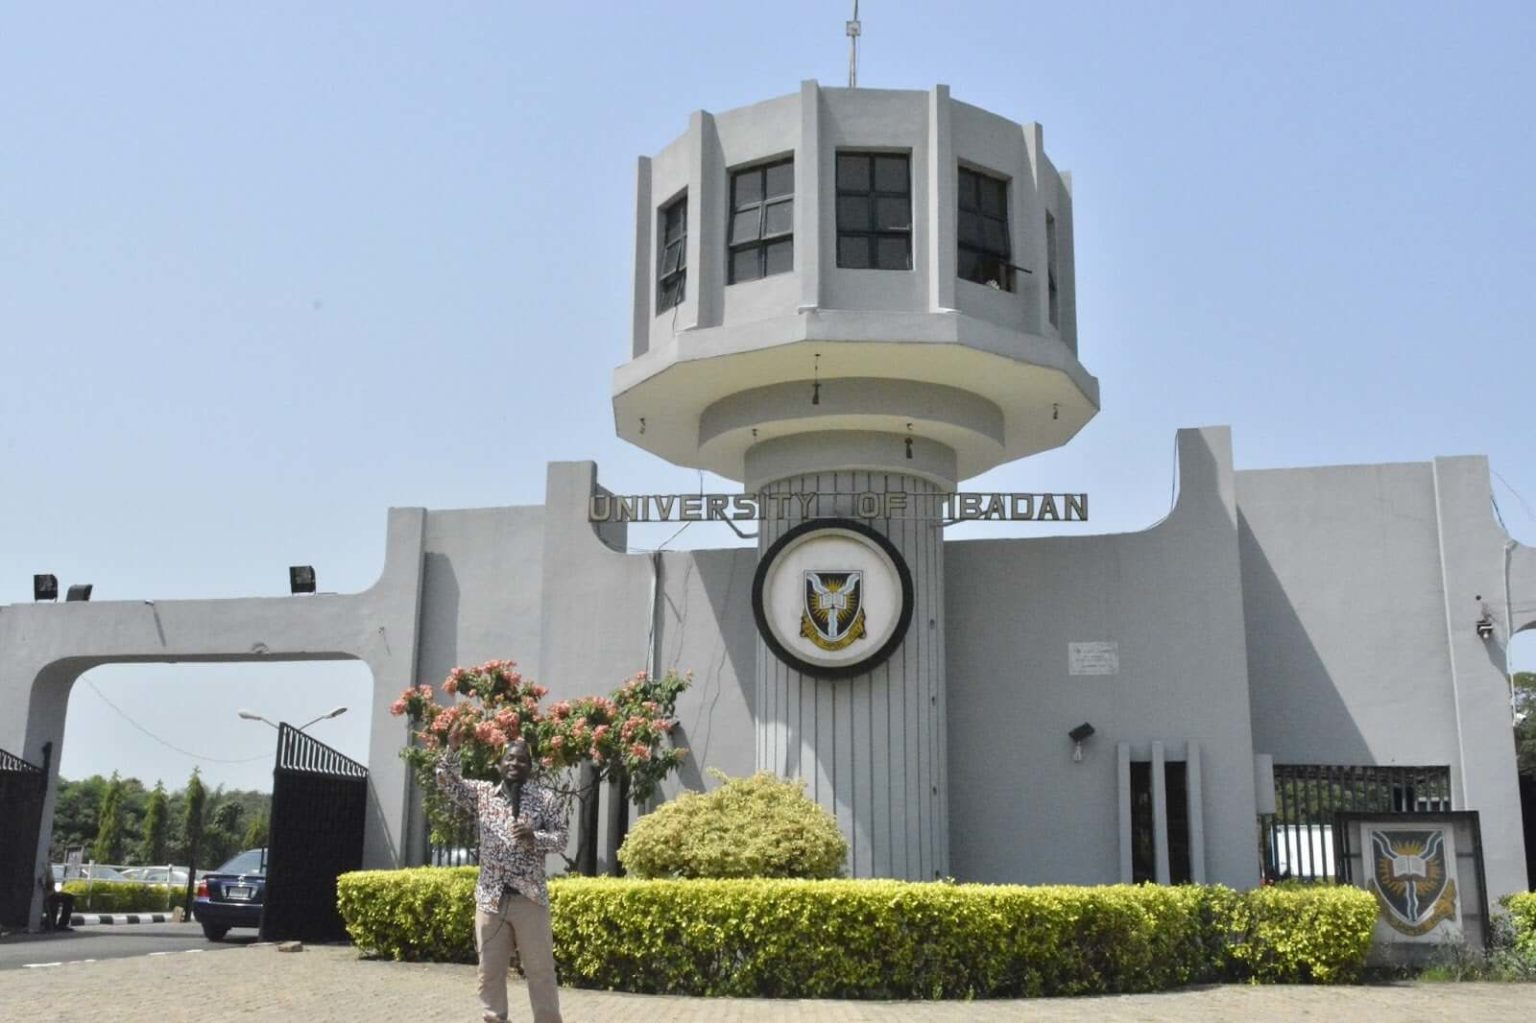 Staff Protest Alleged Imposition Of UI VC